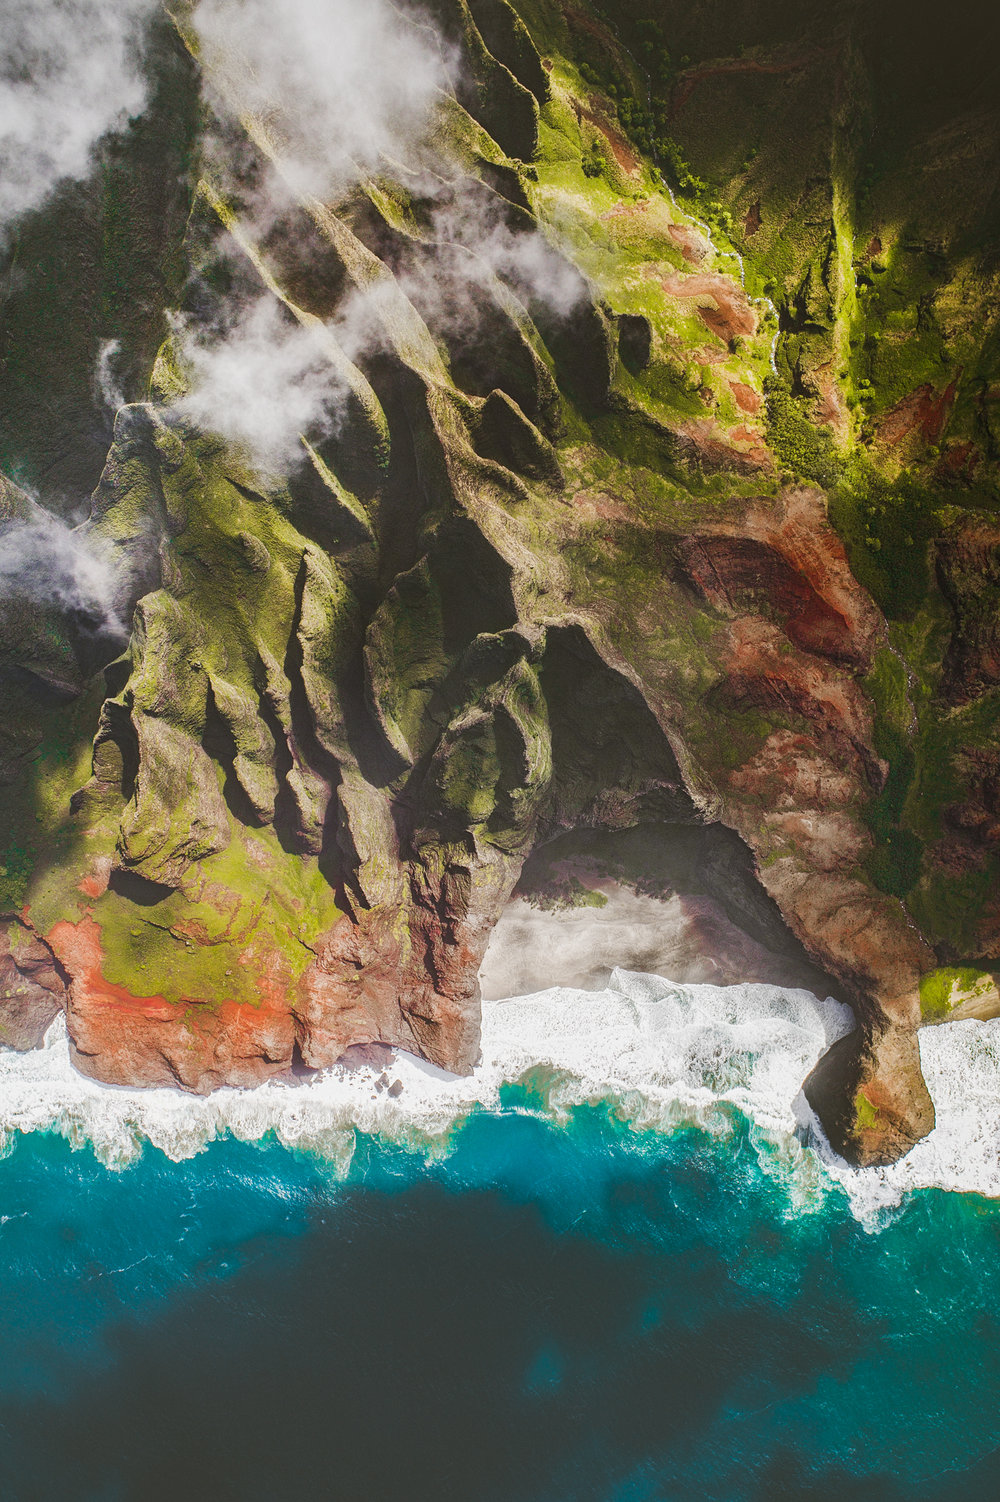 kalalau beach merge-Edit.jpg